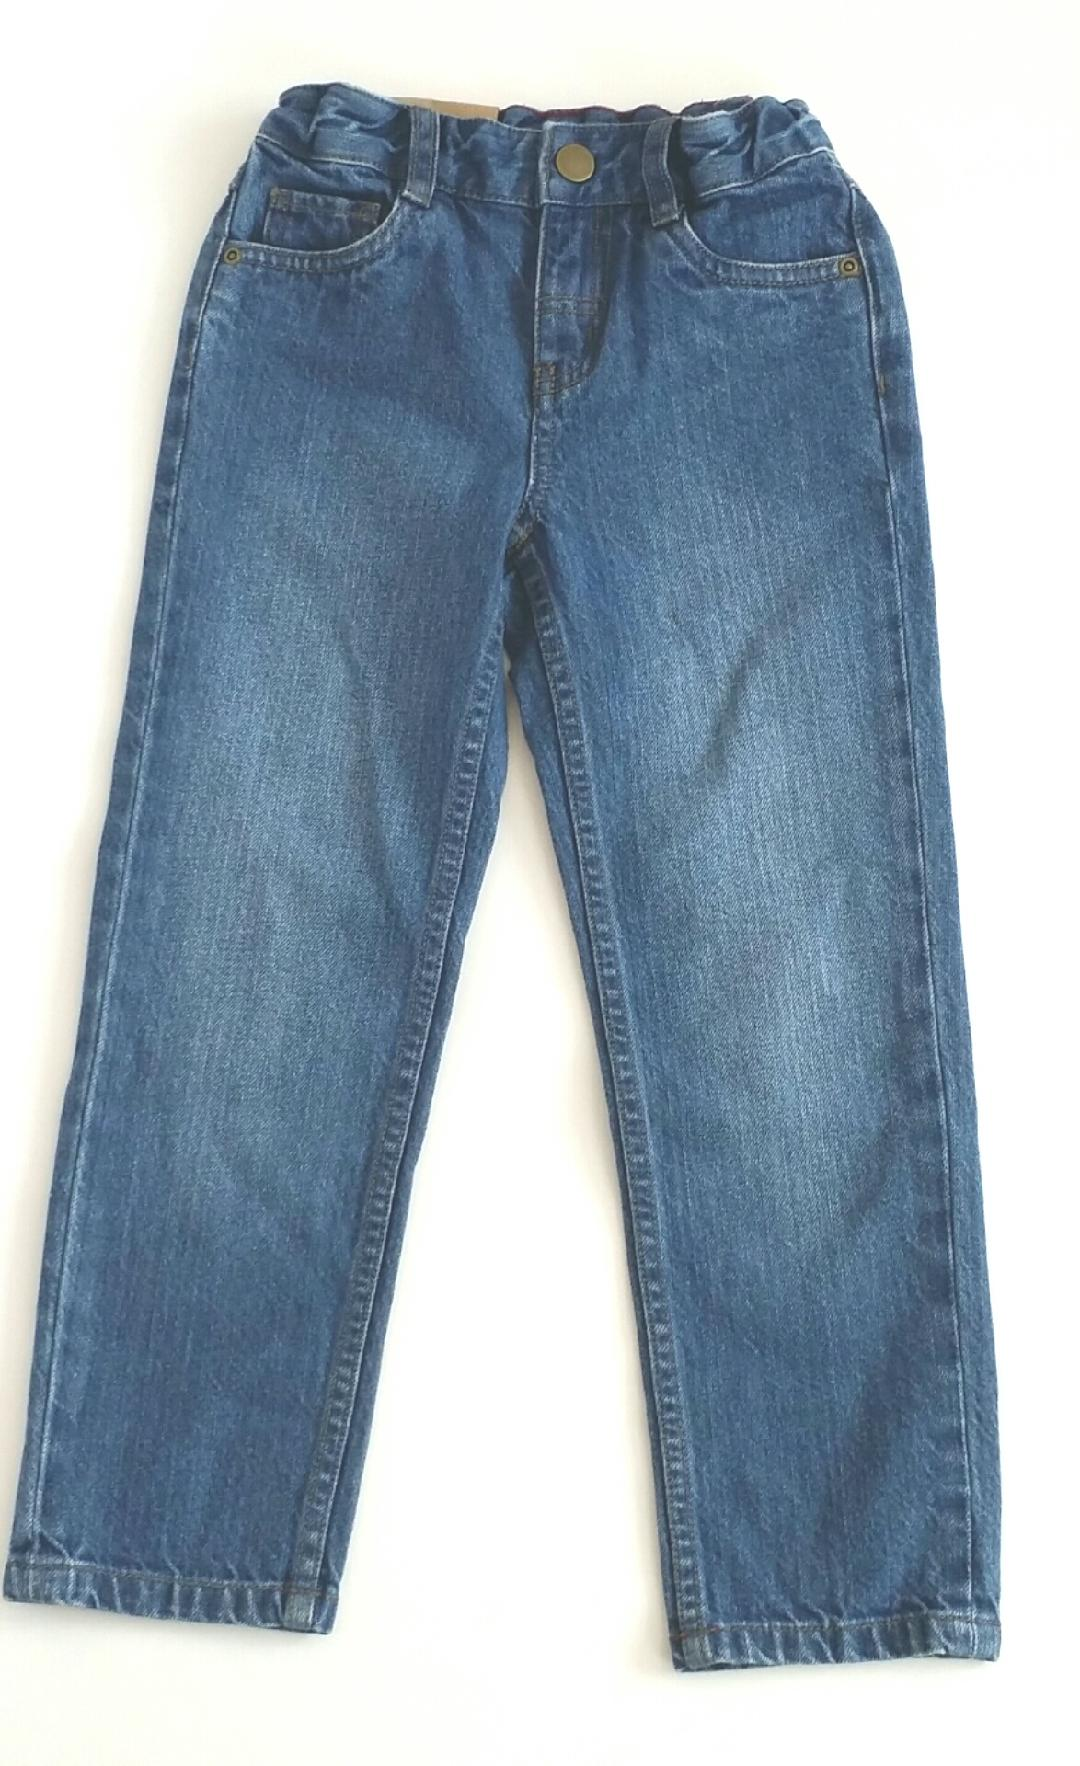 Hanna-Andersson-5-YEARS-Straight-Leg-Jeans_2157054A.jpg